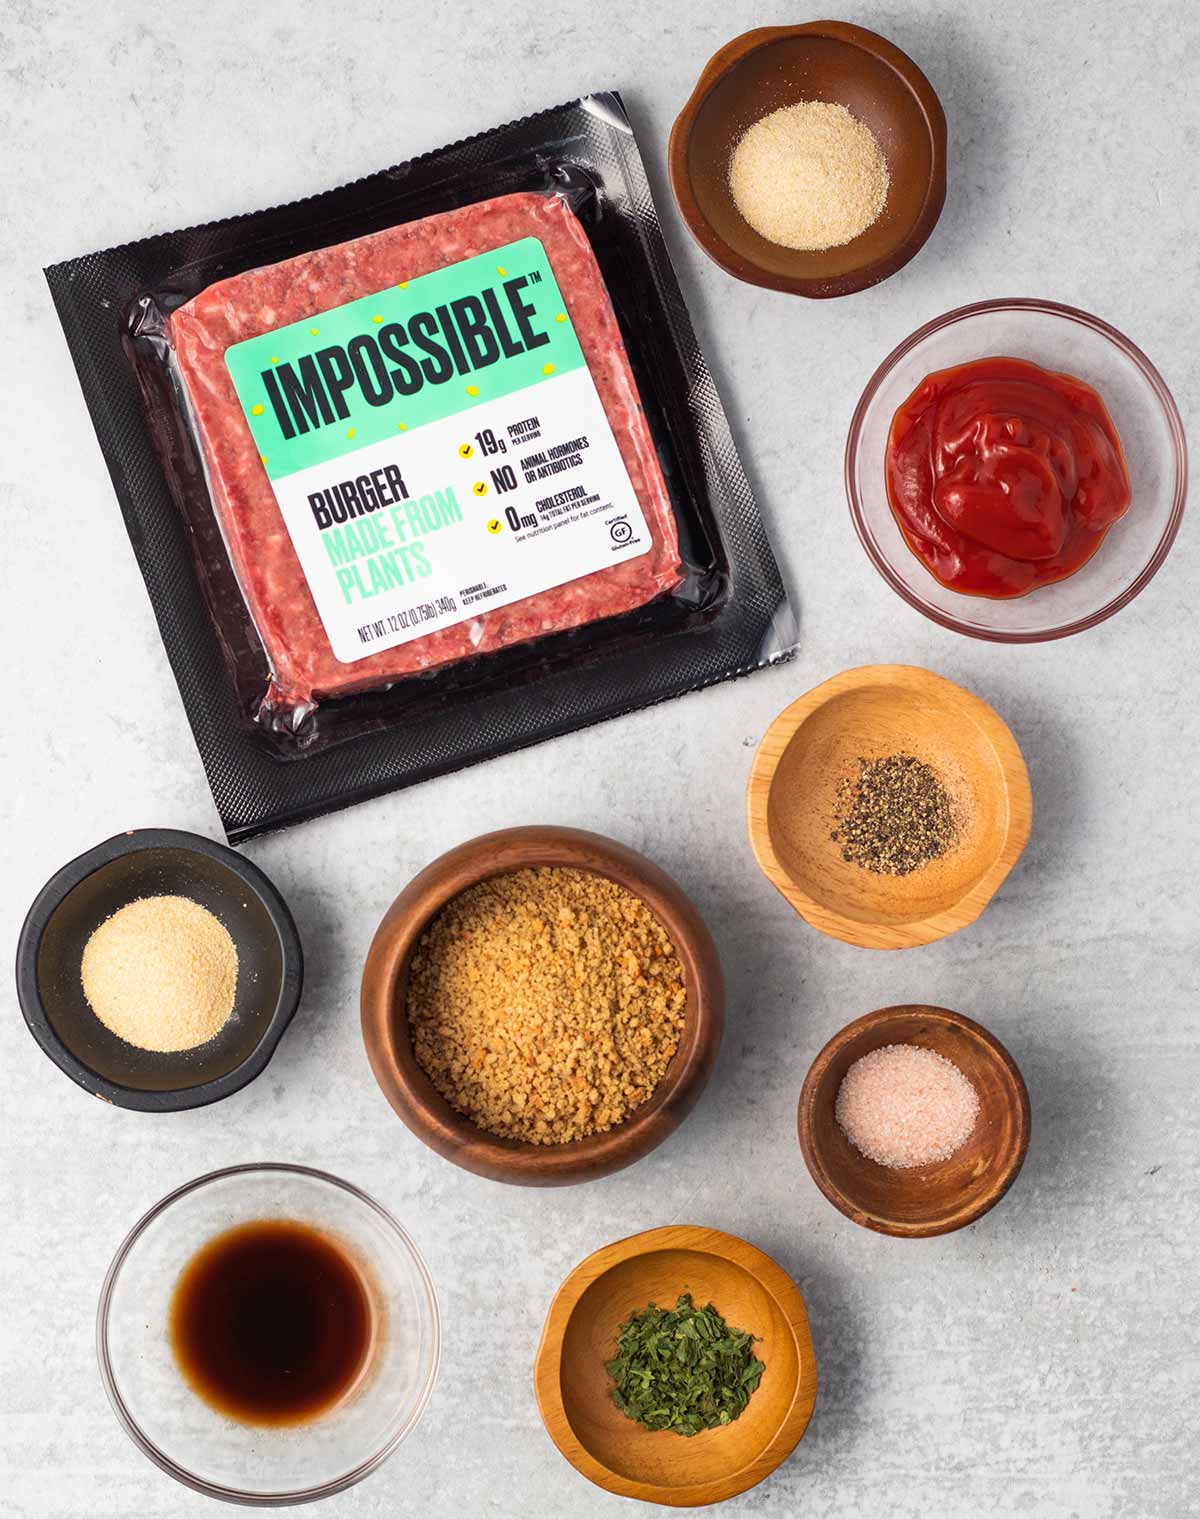 Ingredients for vegan meatloaf laid out on the table. A package of Impossible burger, and small bowls containing garlic powder, ketchup, pepper, salt, breadcrumbs, parsley, Worcestershire sauce, and onion powder.